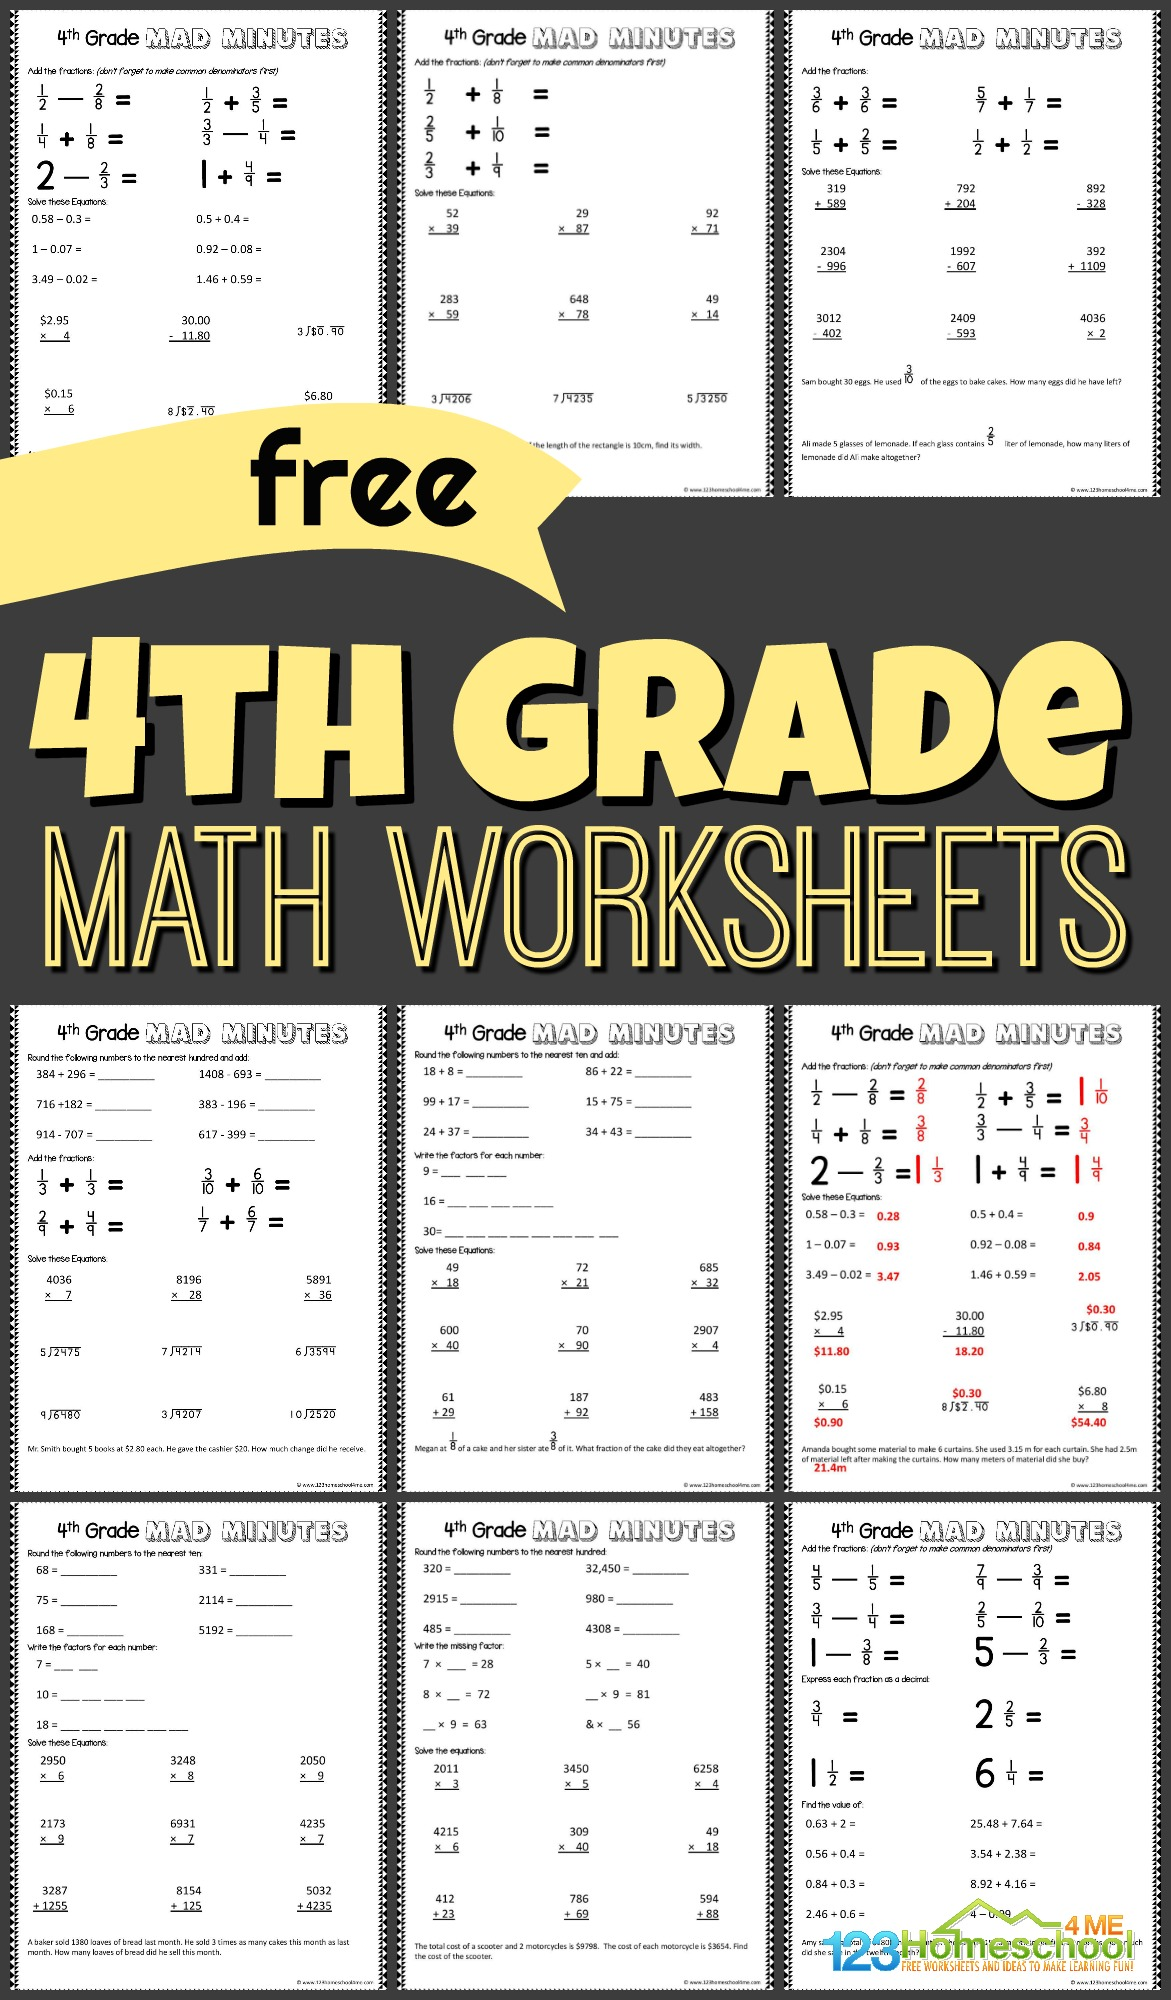 Help your kids get extra math practice with these free printable 4th Grade Math Worksheets. These free printable 4th grade worksheets are no-prep, download pdf file... print....go! These free homeschool worksheets are perfect for summer learning, math centers, and extra practice with grade 4 math, and to help kids gain math fluency in fourth grade.